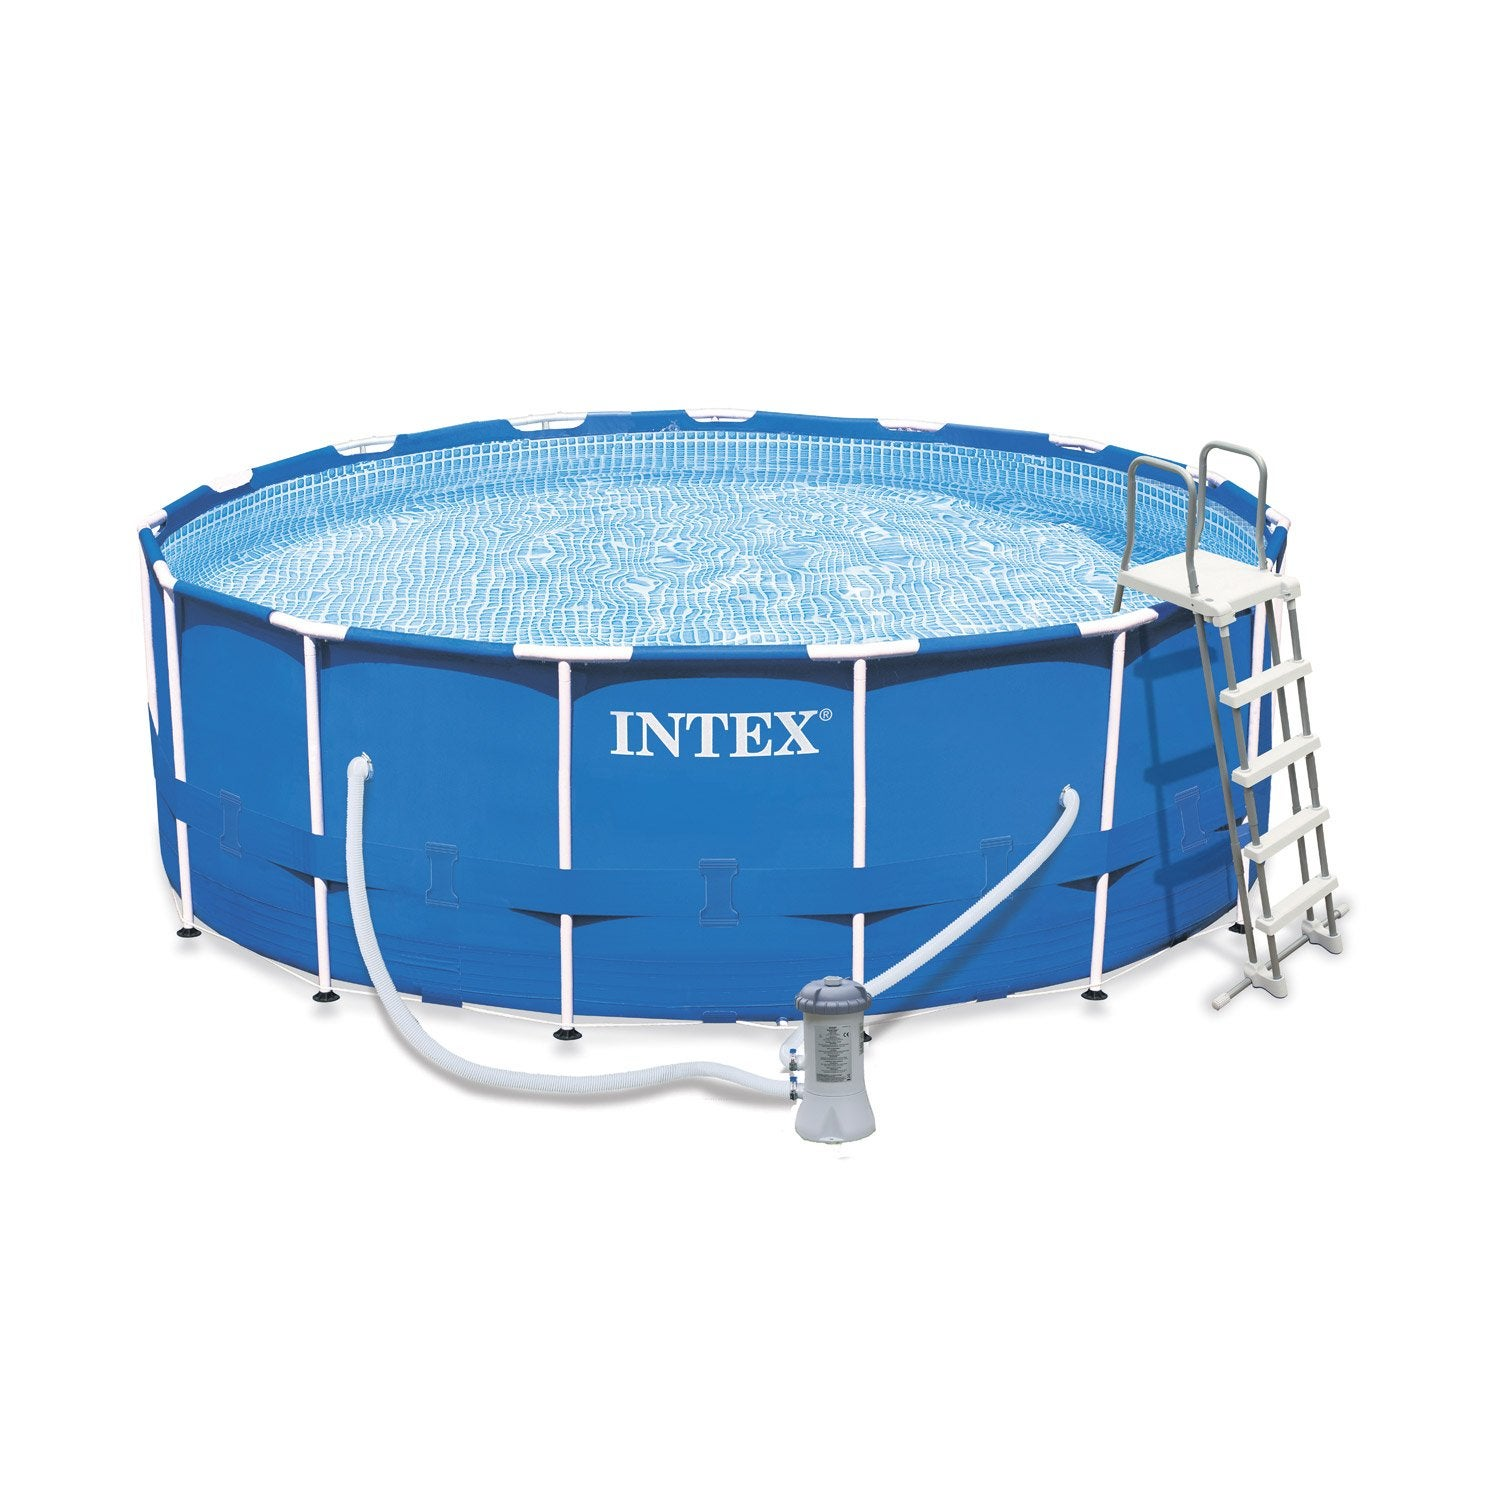 Piscine hors sol autoportante tubulaire metal frame intex - Piscine hors sol intex castorama ...